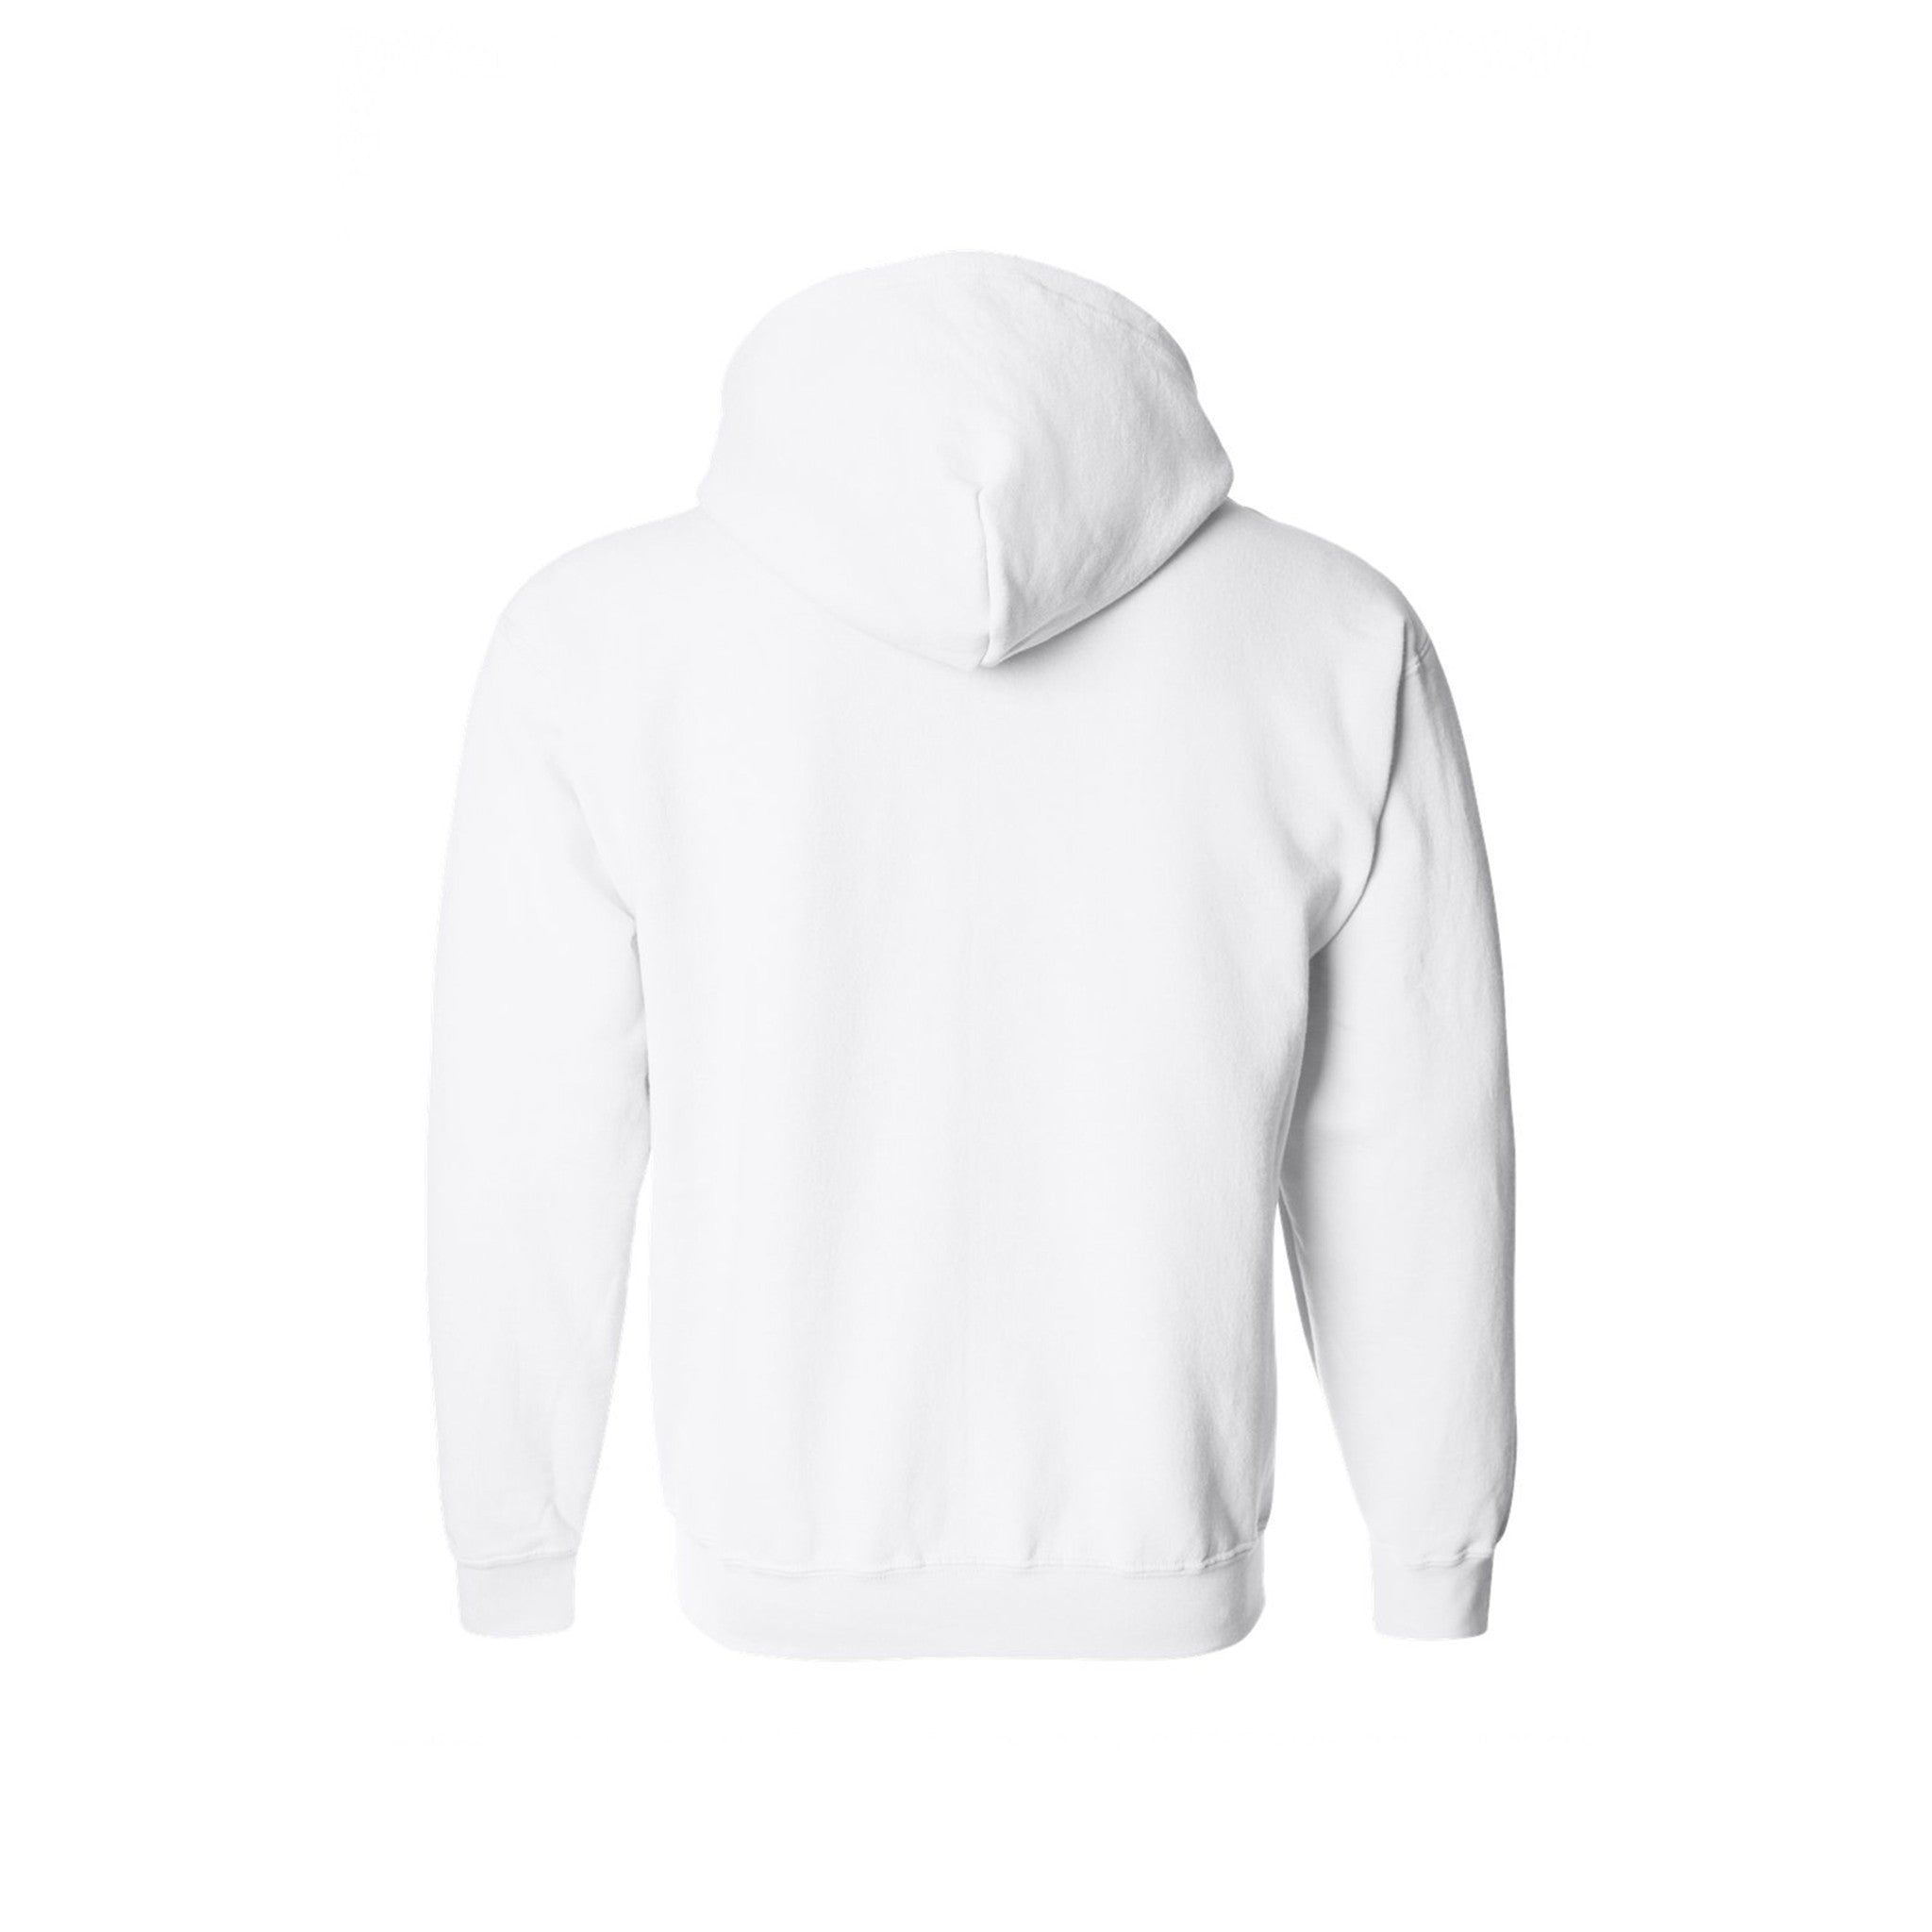 SportyFish Atlantic Sailfish white hoodie back view